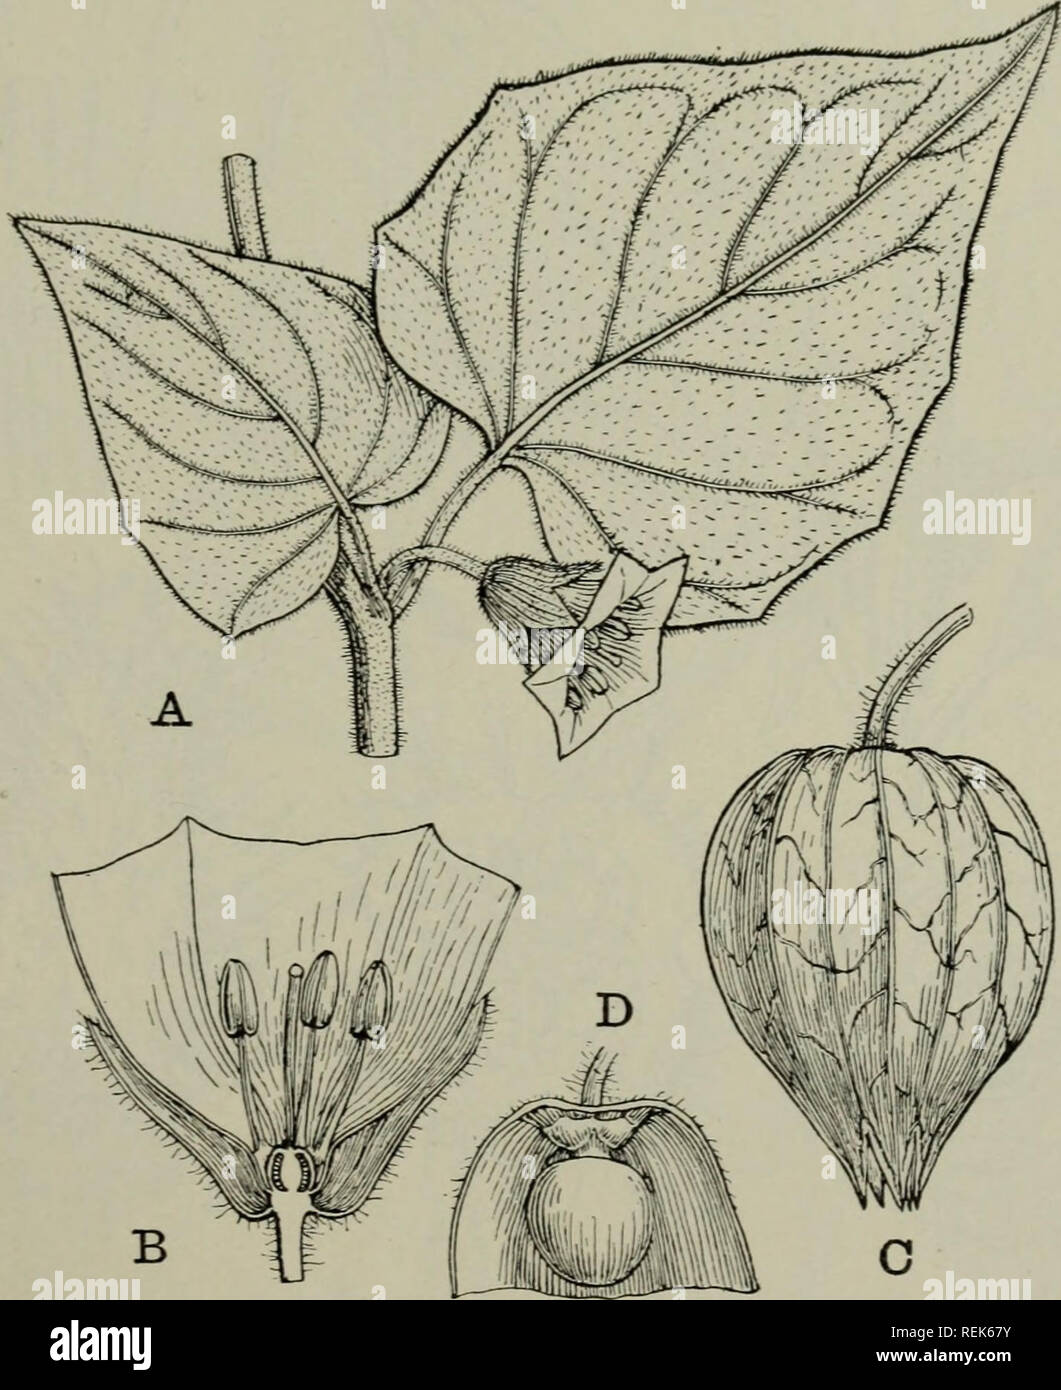 . The classification of flowering plants. Plants. SOLANACEAE 519 an ornamental plant, the calyx becoming enlarged in the fruit, as in Physalis. Tribe 2. Solaneae. Ovar}^ two-chambered. Contains 40 genera, which are grouped into subtribes according to the form of the corolla, the character of the fruit, and the insertion of the anther. Lycium has 100 species in the extratropical parts of both hemispheres, comprising small trees or shrubs, often thorny with a long cylindrical or narrowly bell-shaped. Fig. 238. Physalis peruviana (Cape Gooseberry). A. Flower-bearing node, f nat. size. B. Flower i - Stock Image